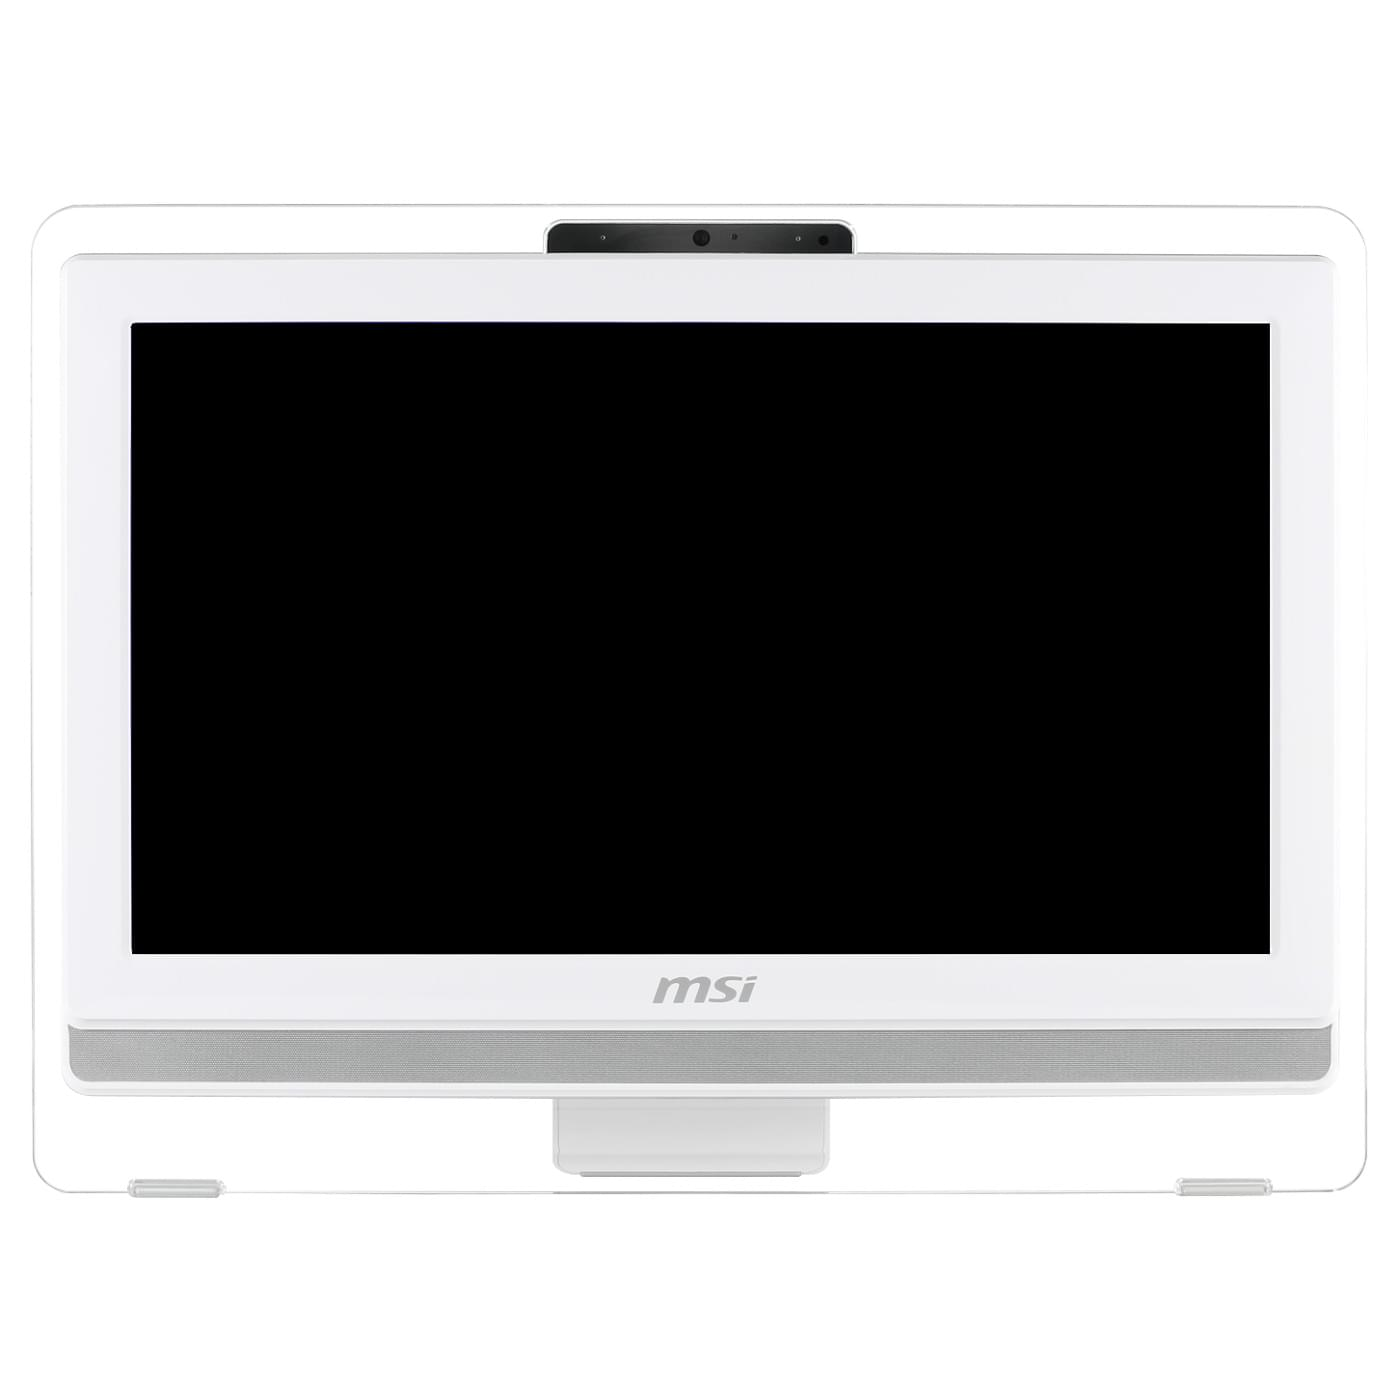 MSI AE202-028EU Blanc (9S6-AA8712-029) - Achat / Vente All-In-One PC sur Cybertek.fr - 0